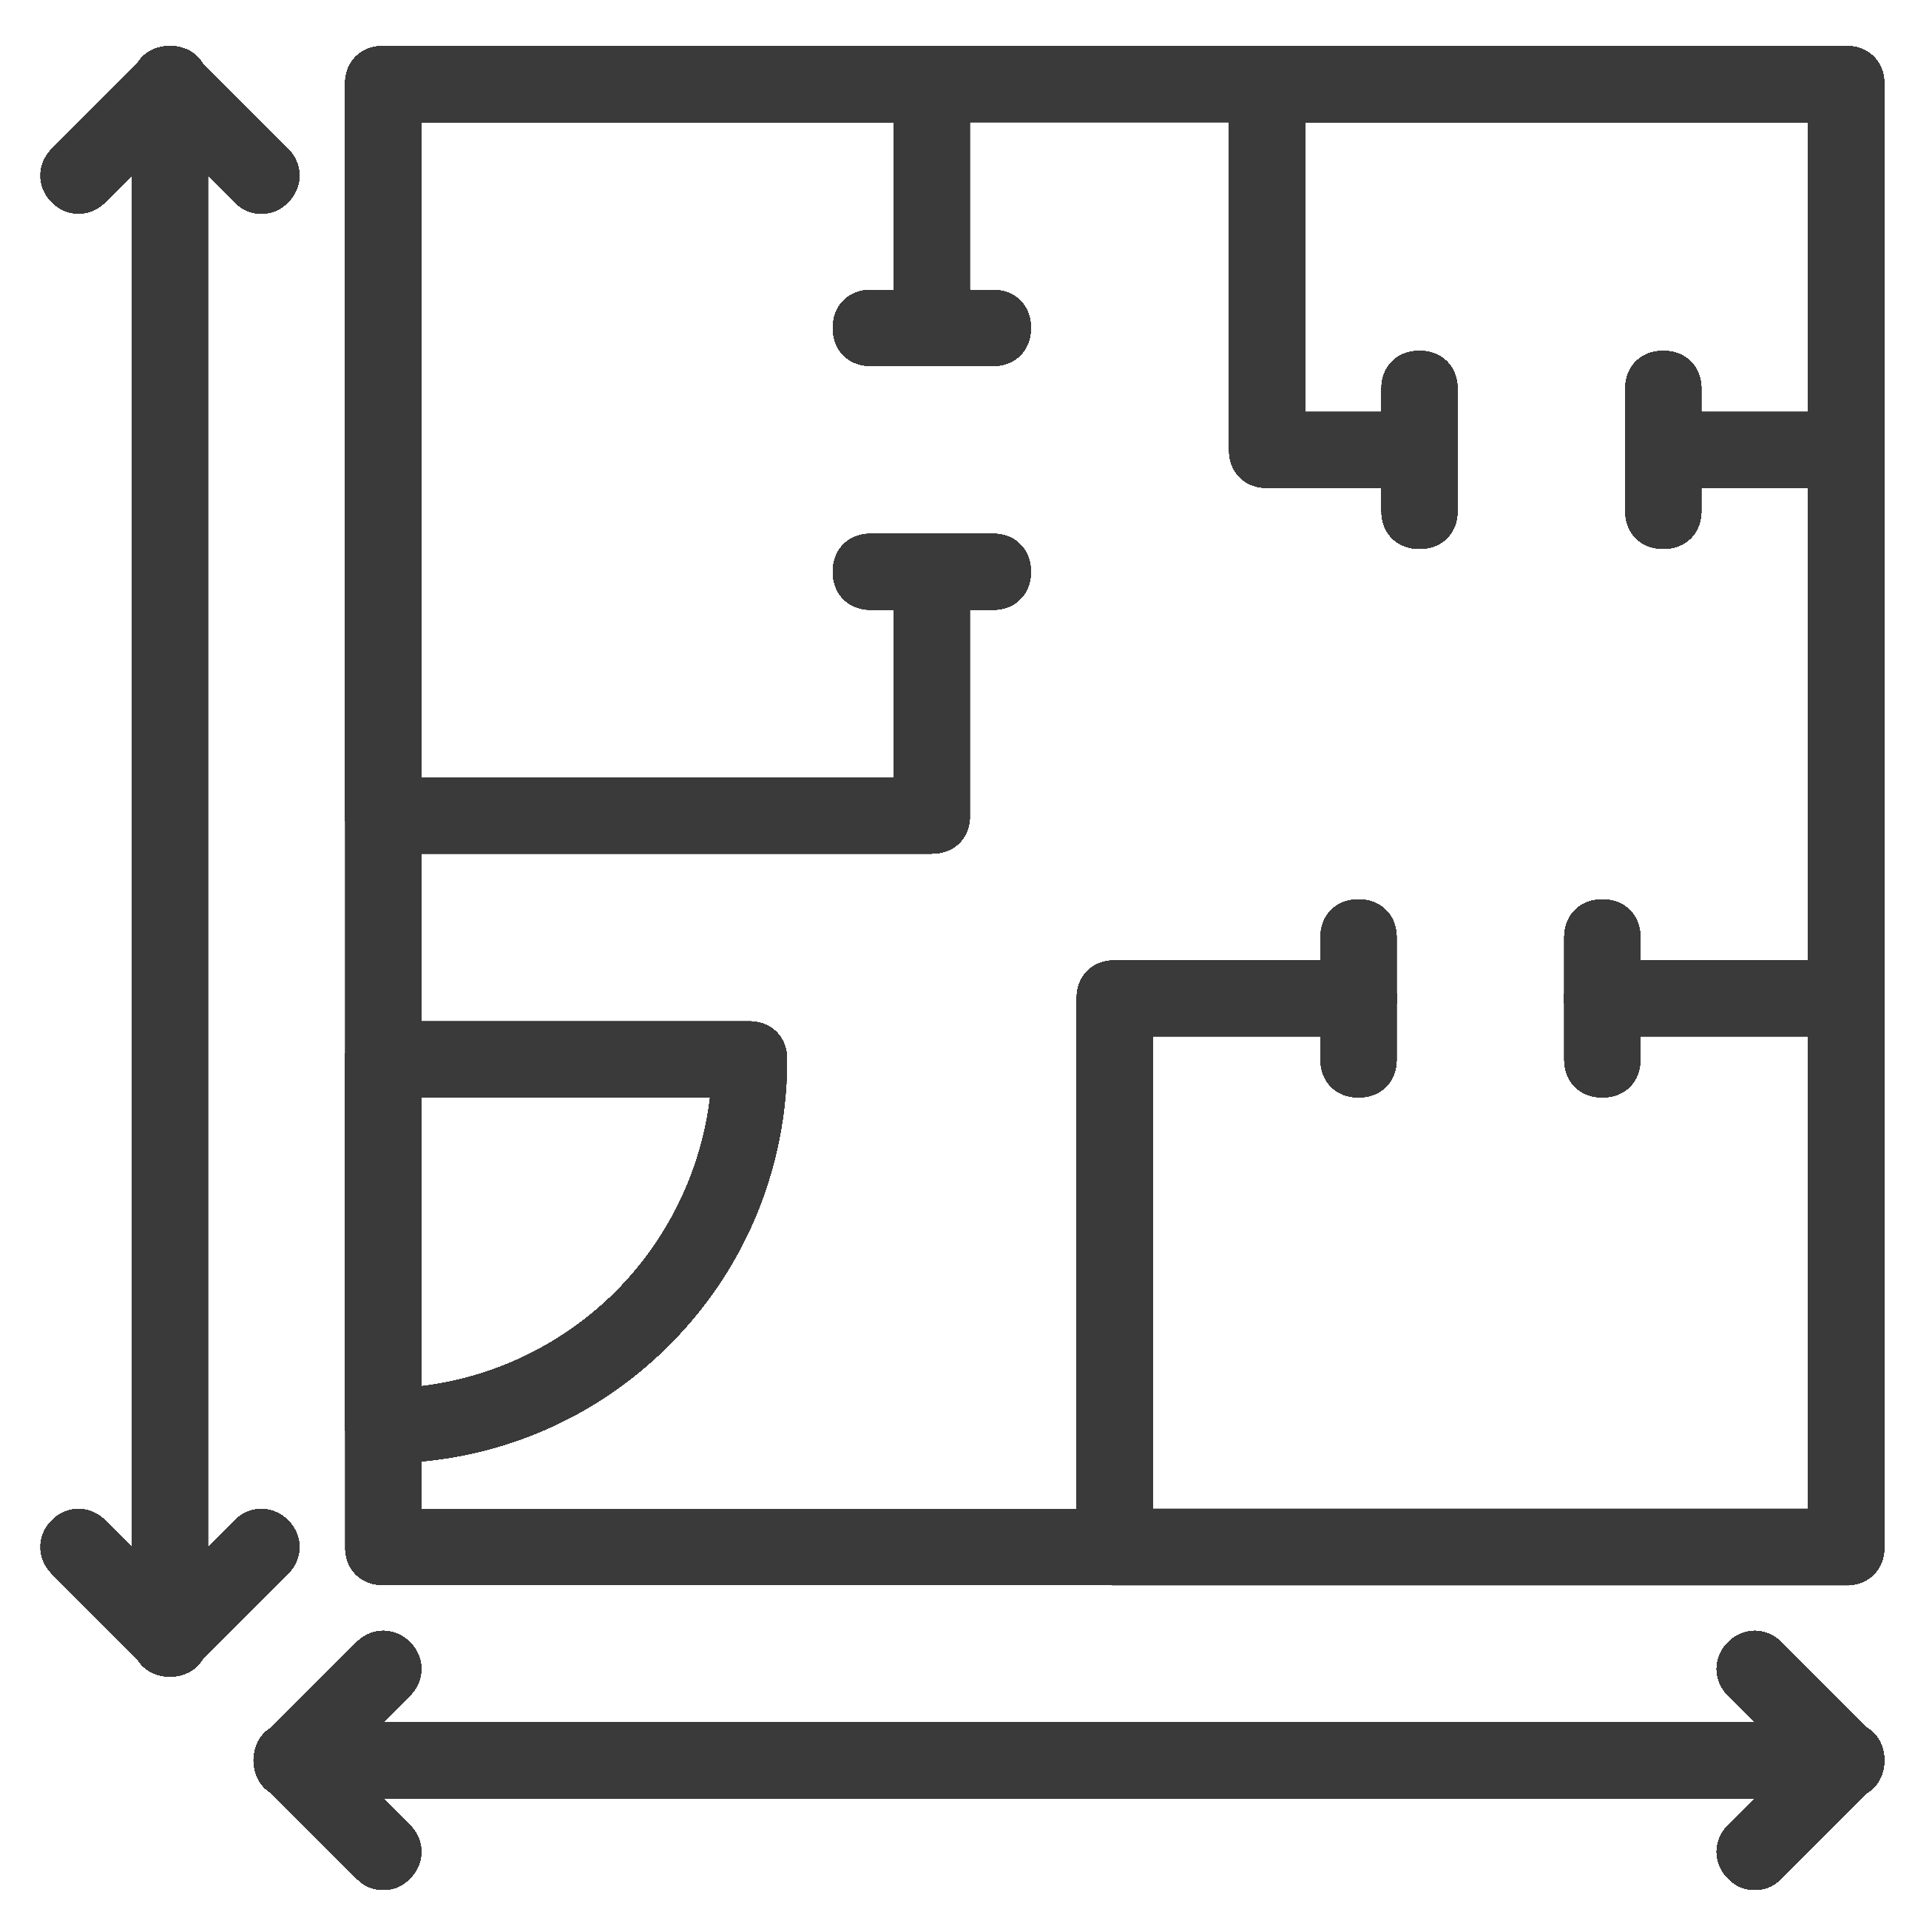 blueprint with square feet length and width measurements